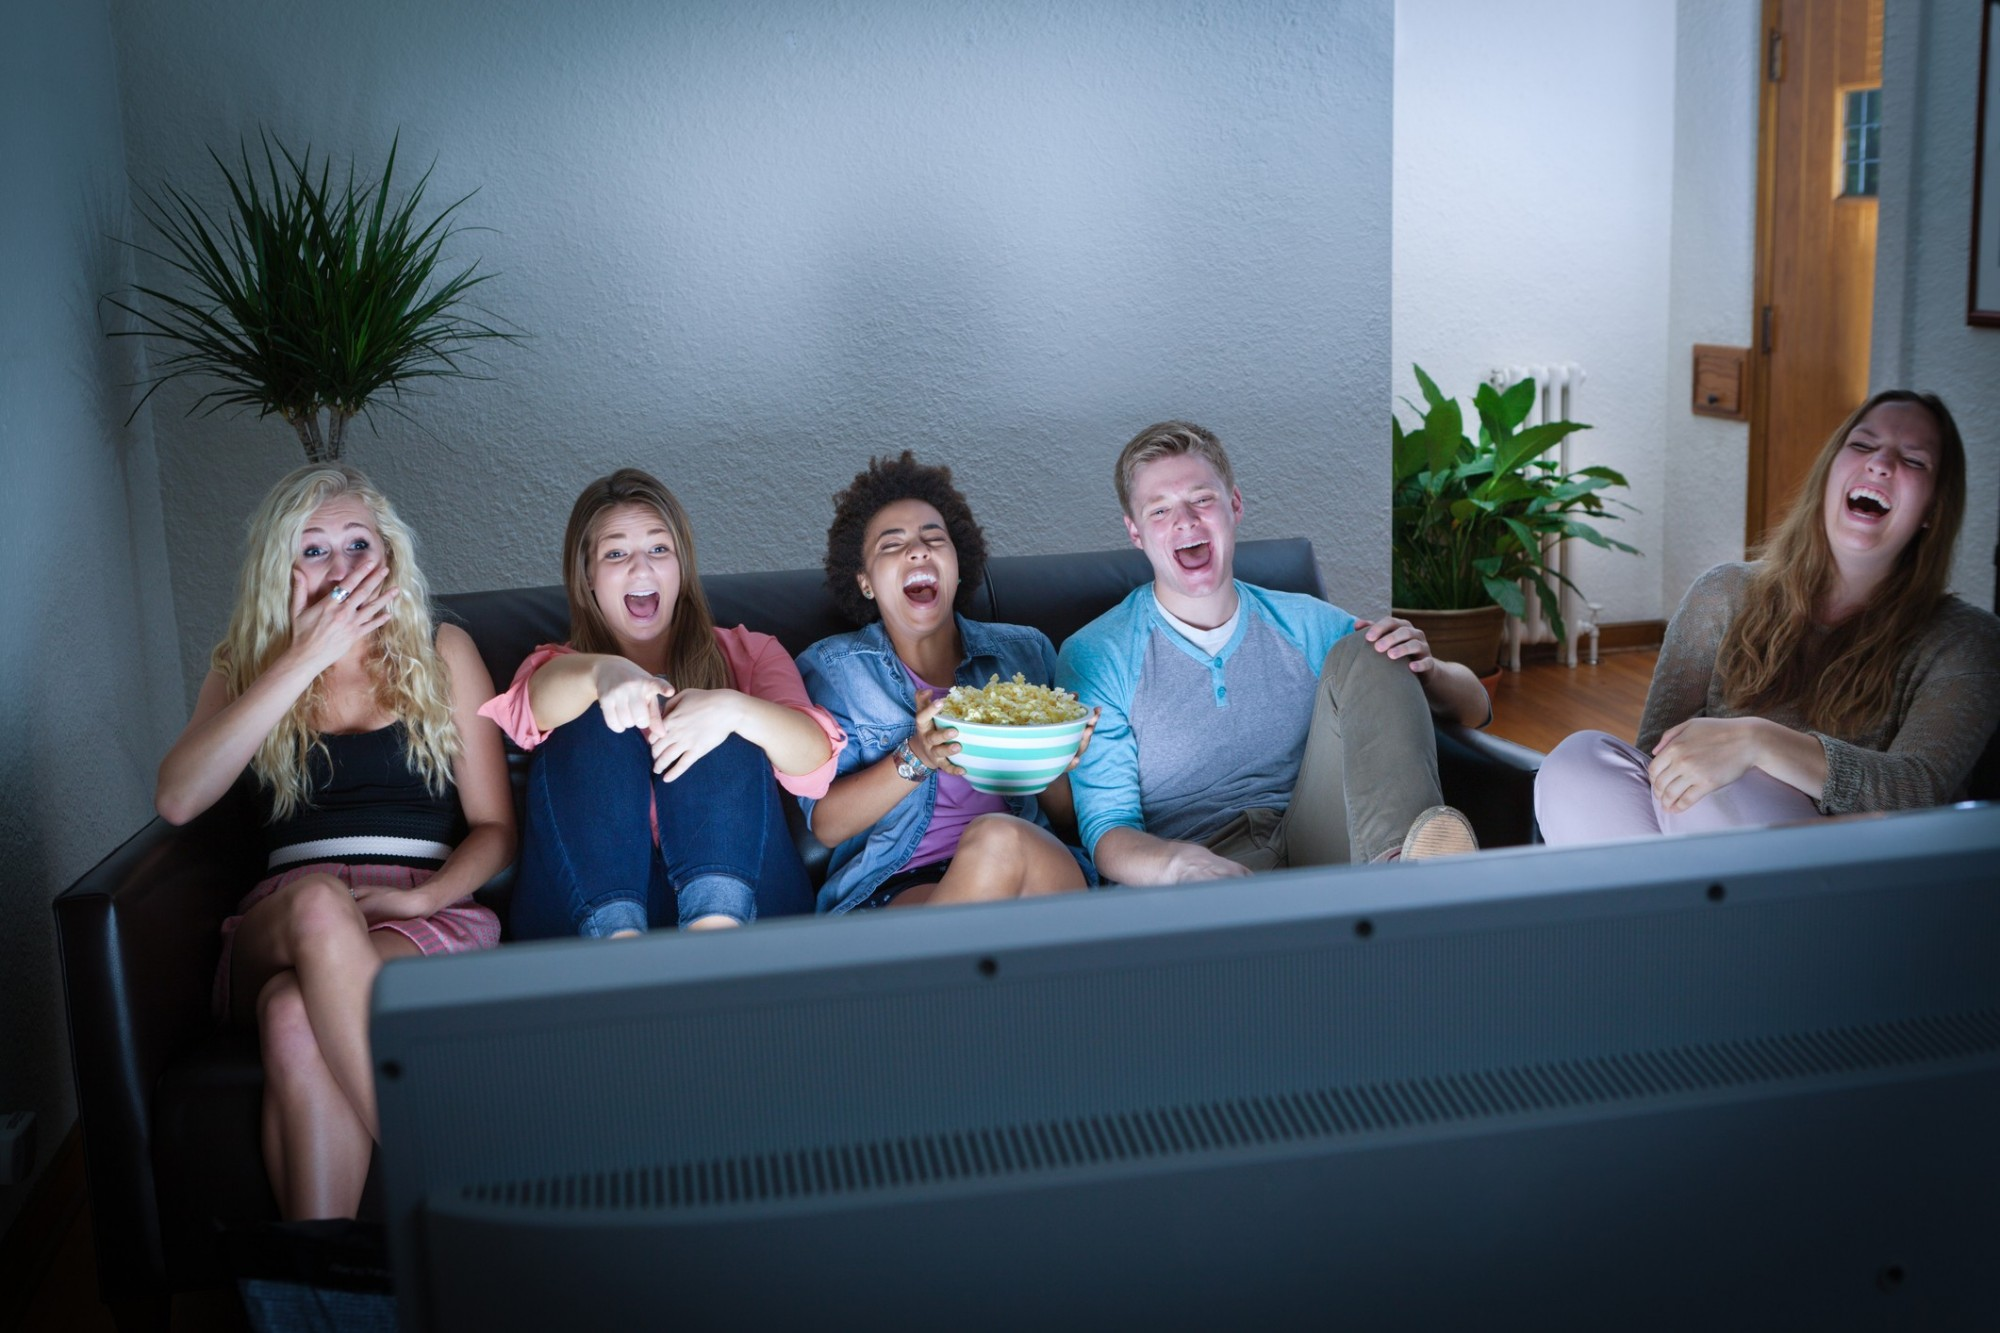 Friends sitting on a couch, eating popcorn and watching a movie at home